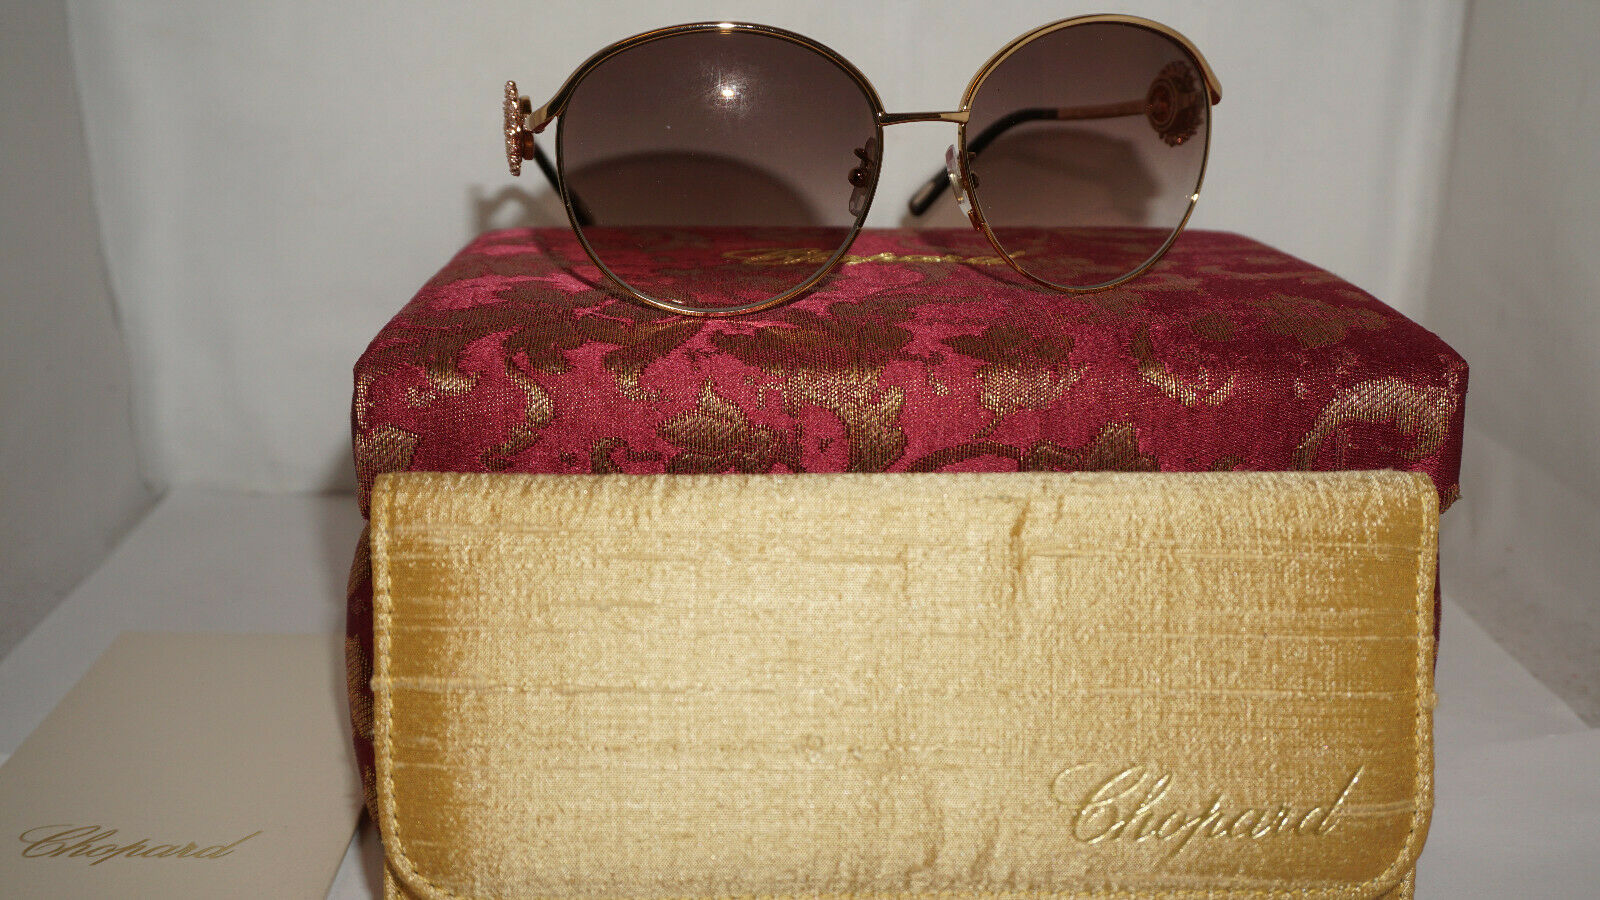 Chopard Sunglasses New Limited Edition Gold 23KT/Crystals SCHB21S 300G 59 16 135